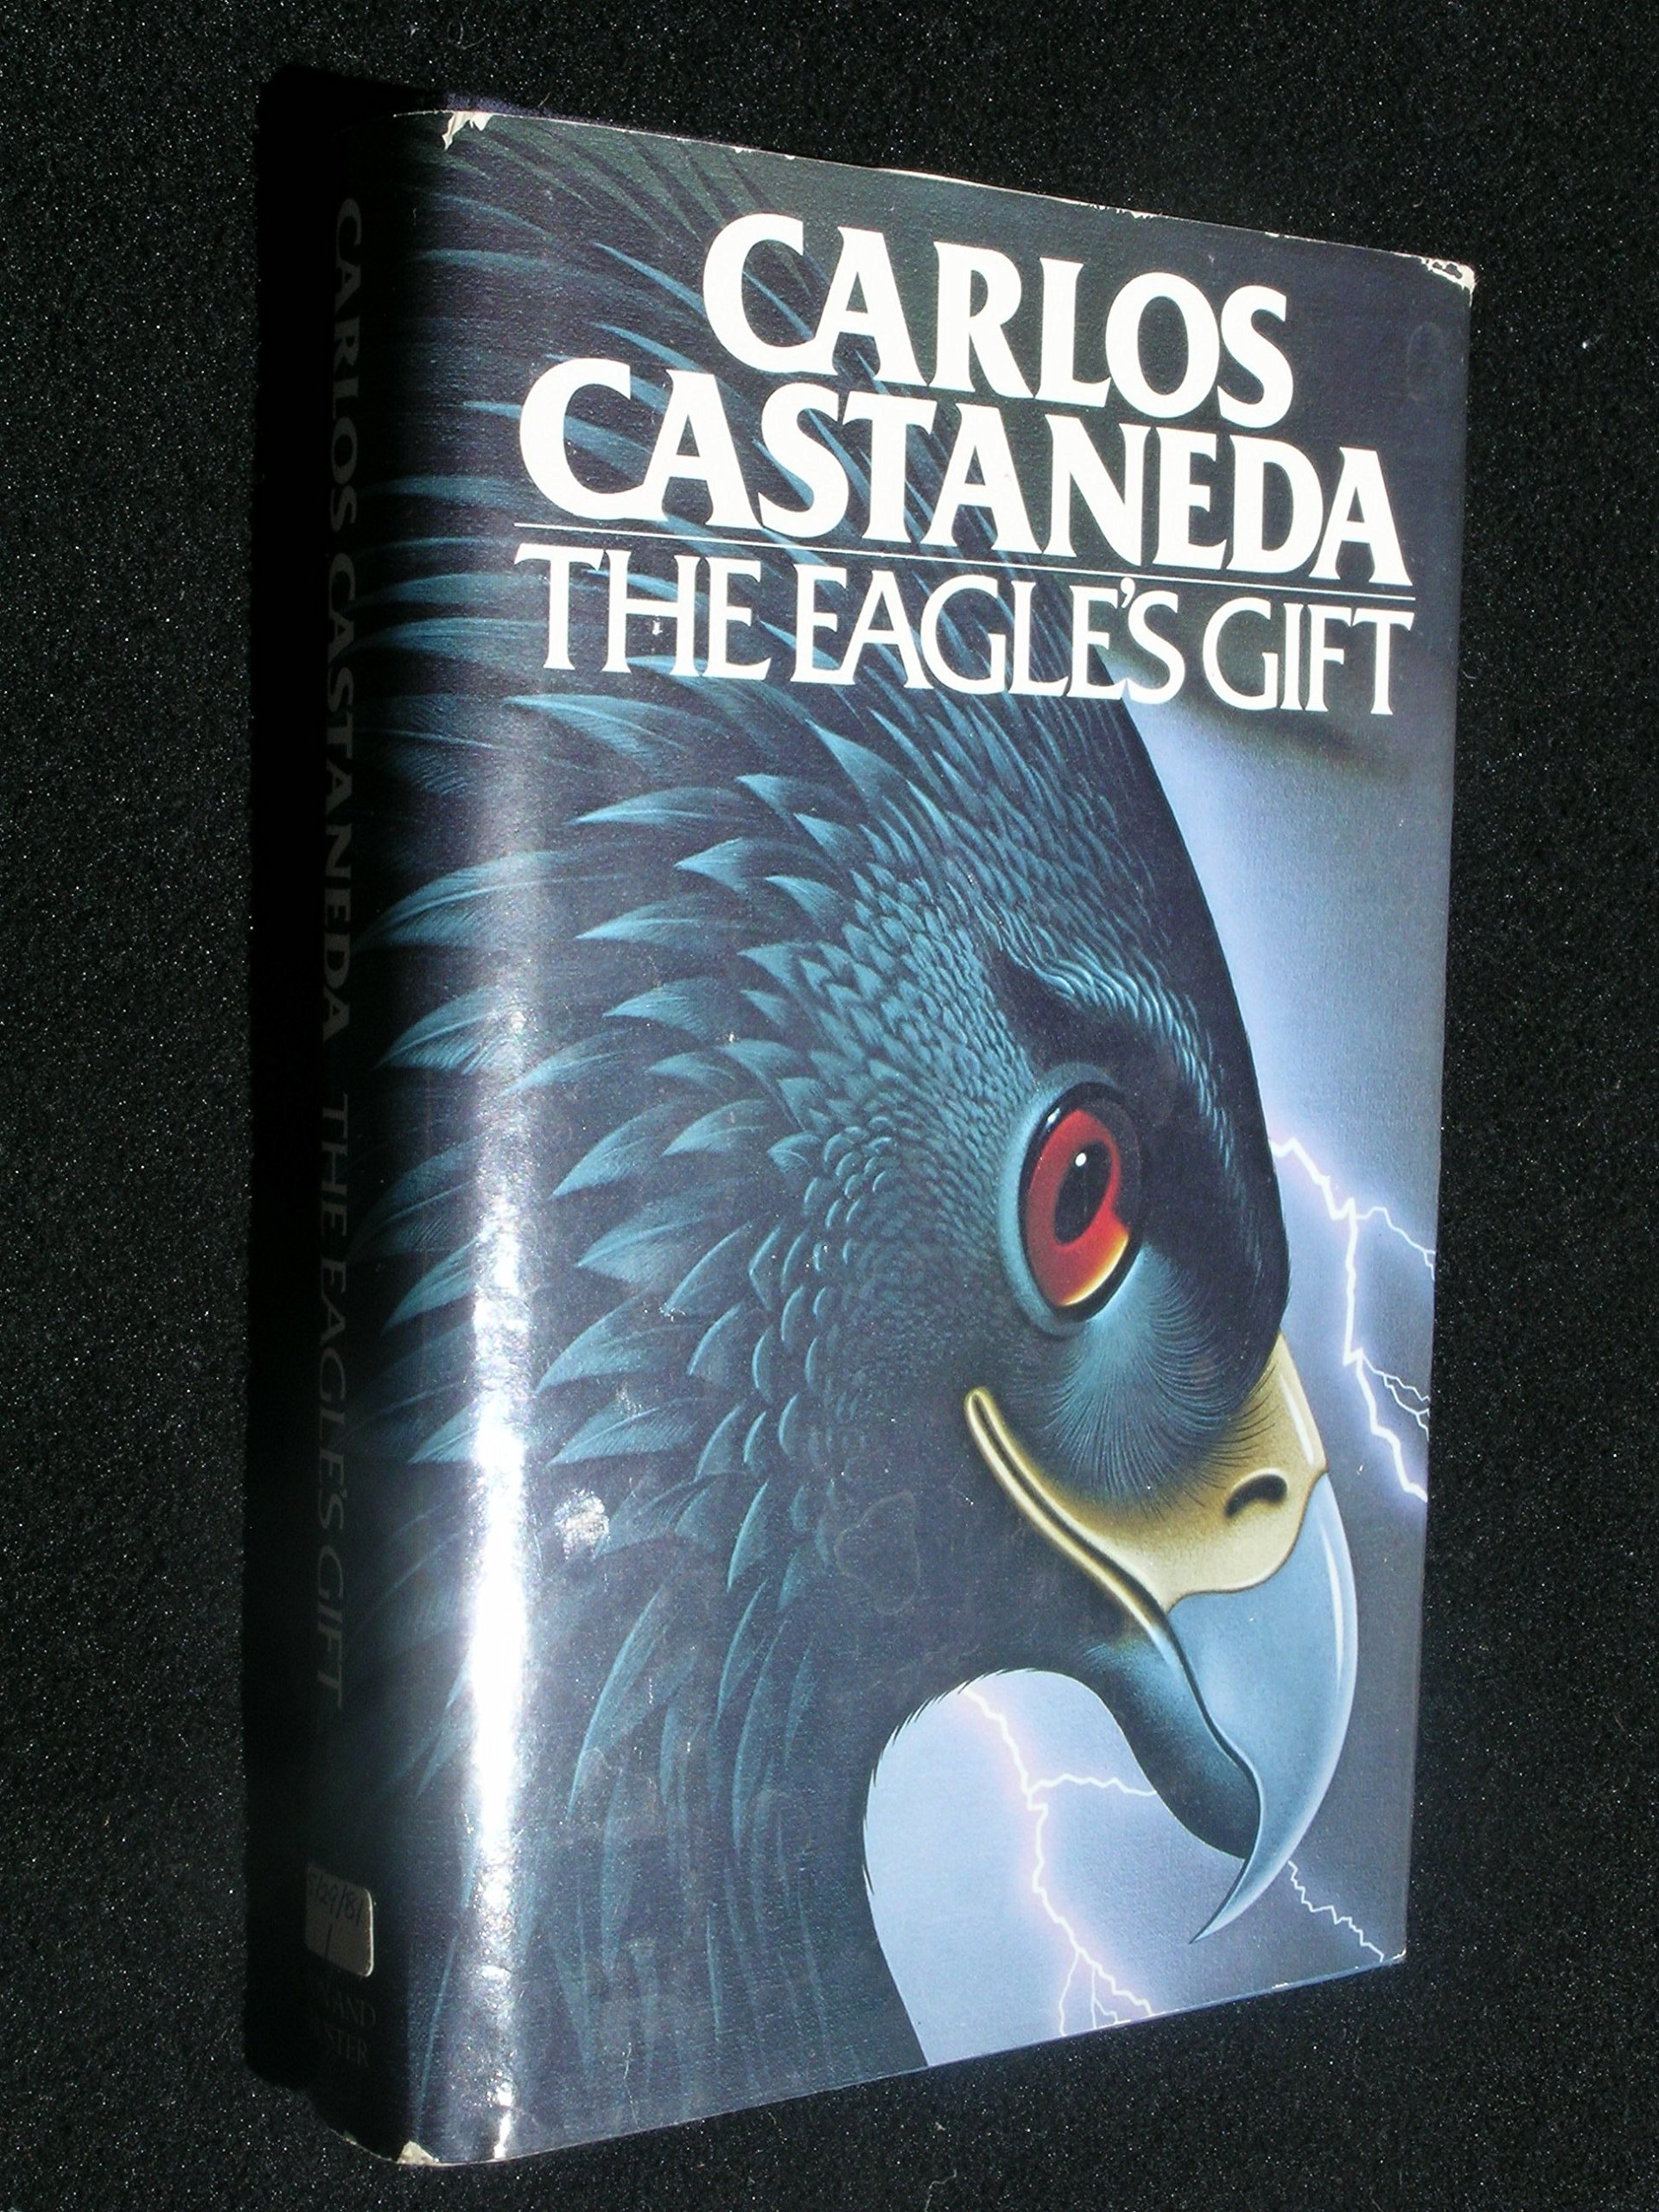 The Eagle's Gift, Carlos Castaneda